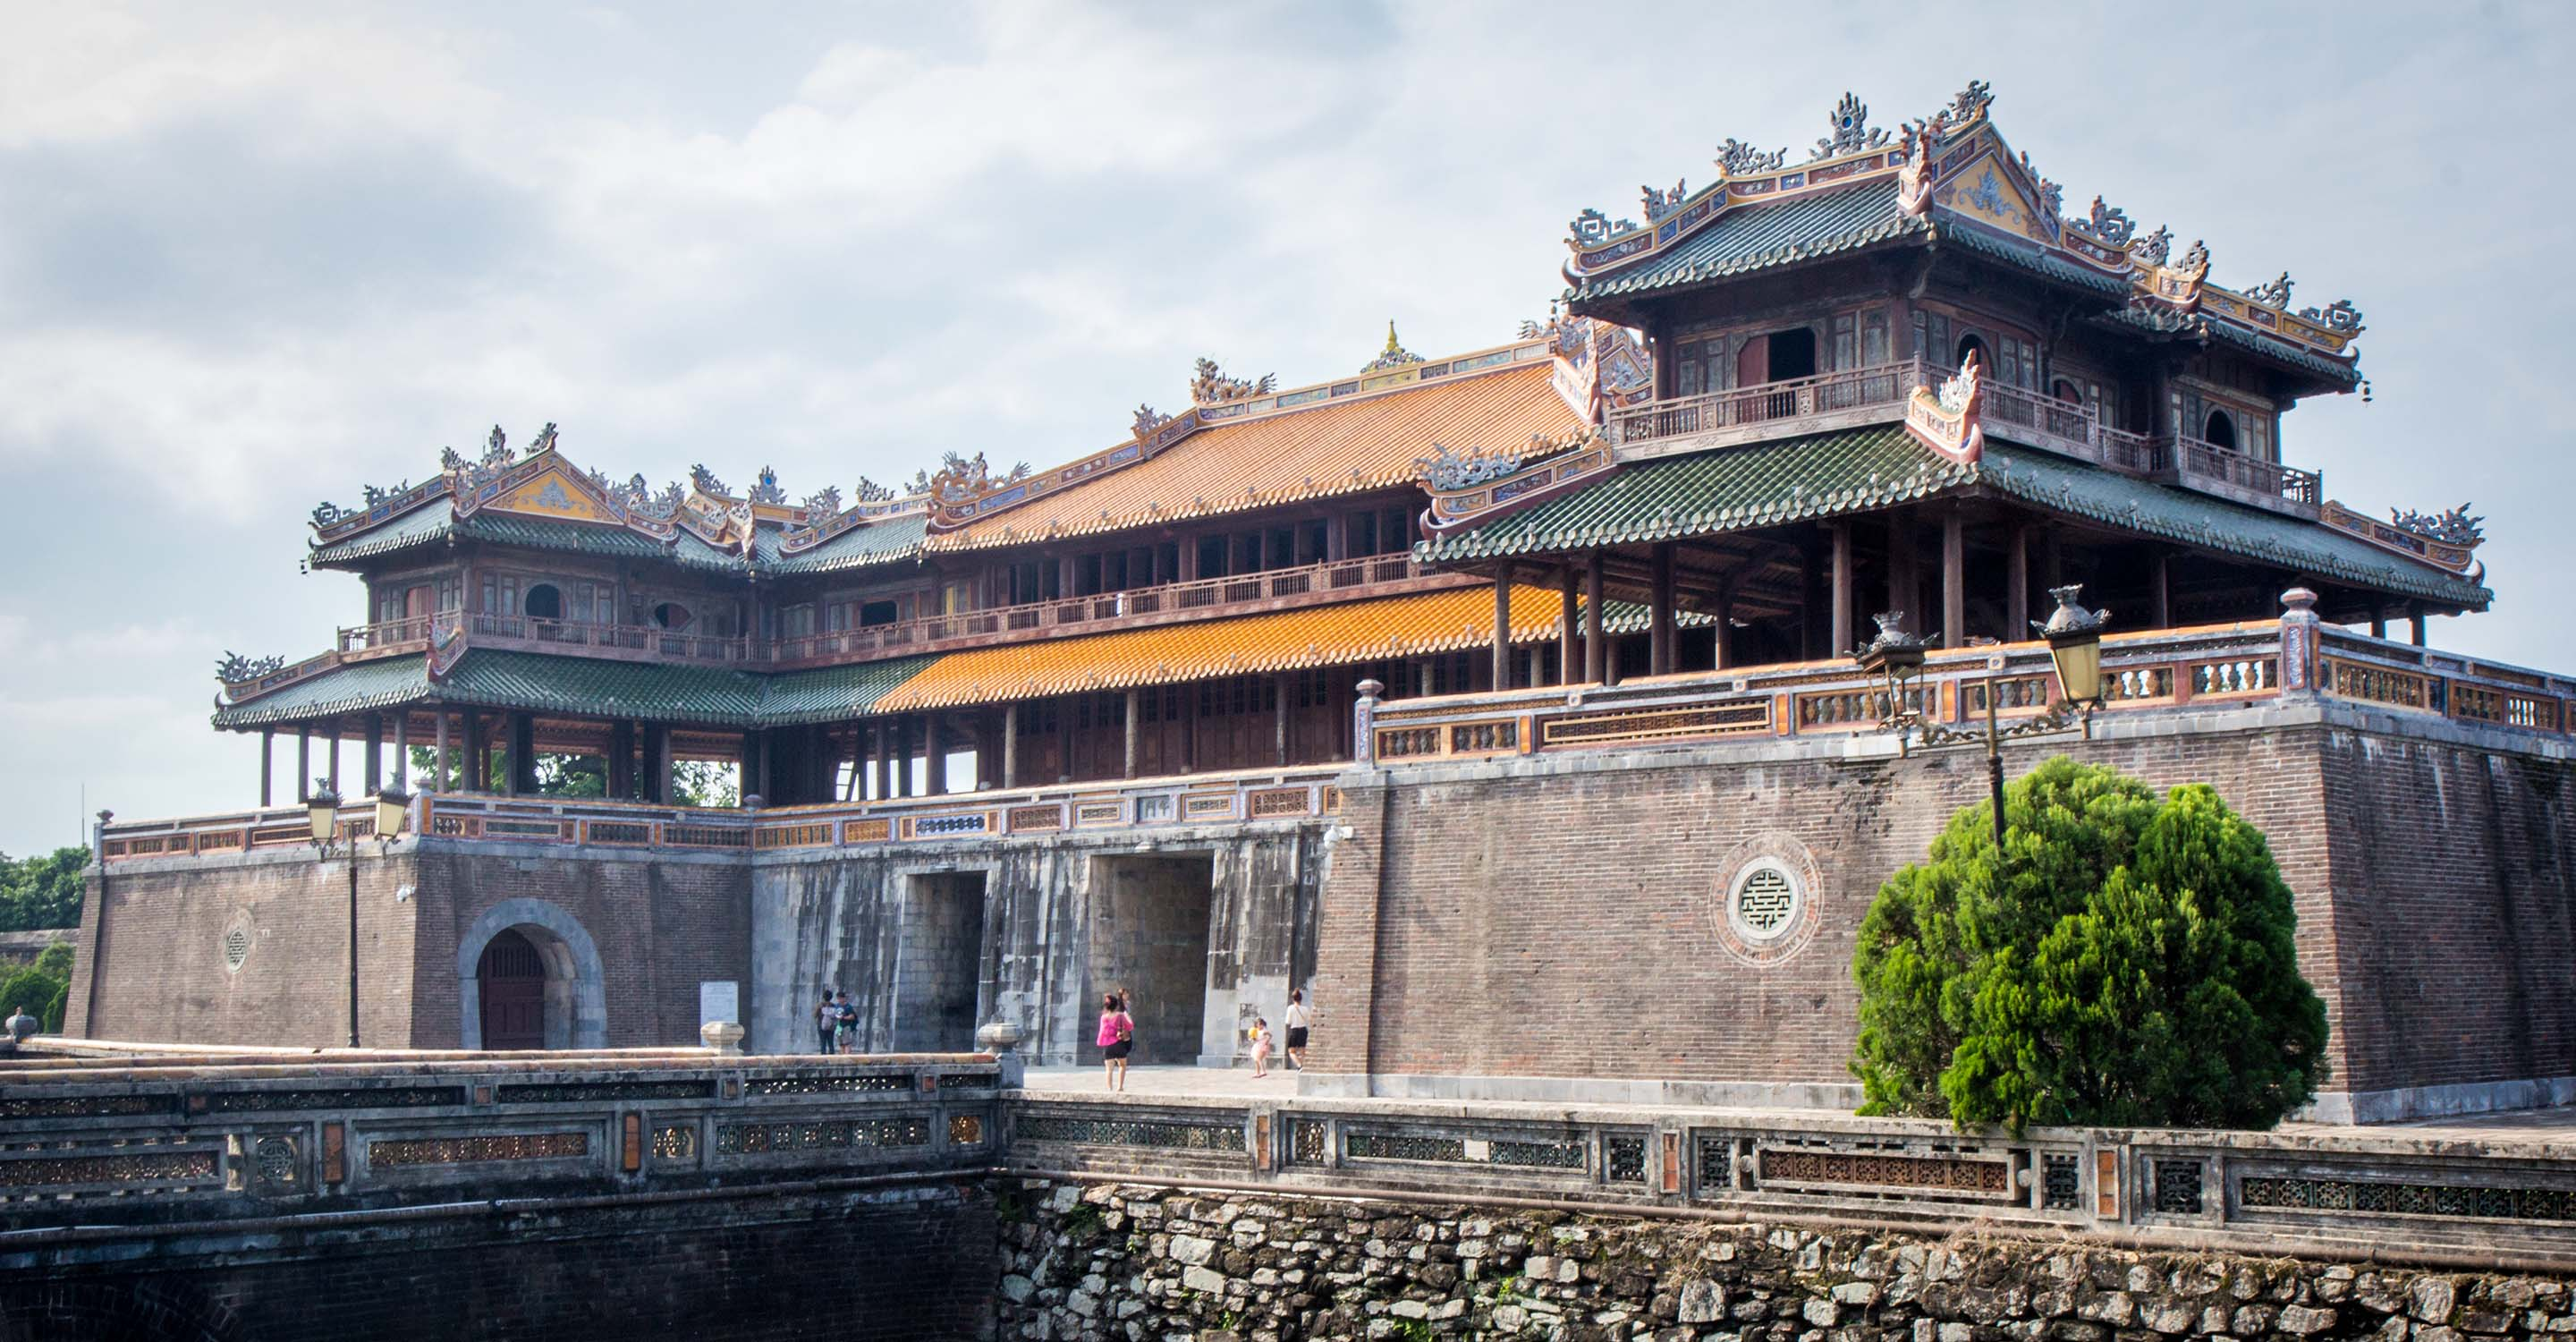 Visiting the Imperial City of Hue - The Hue Citadel, Vietnam